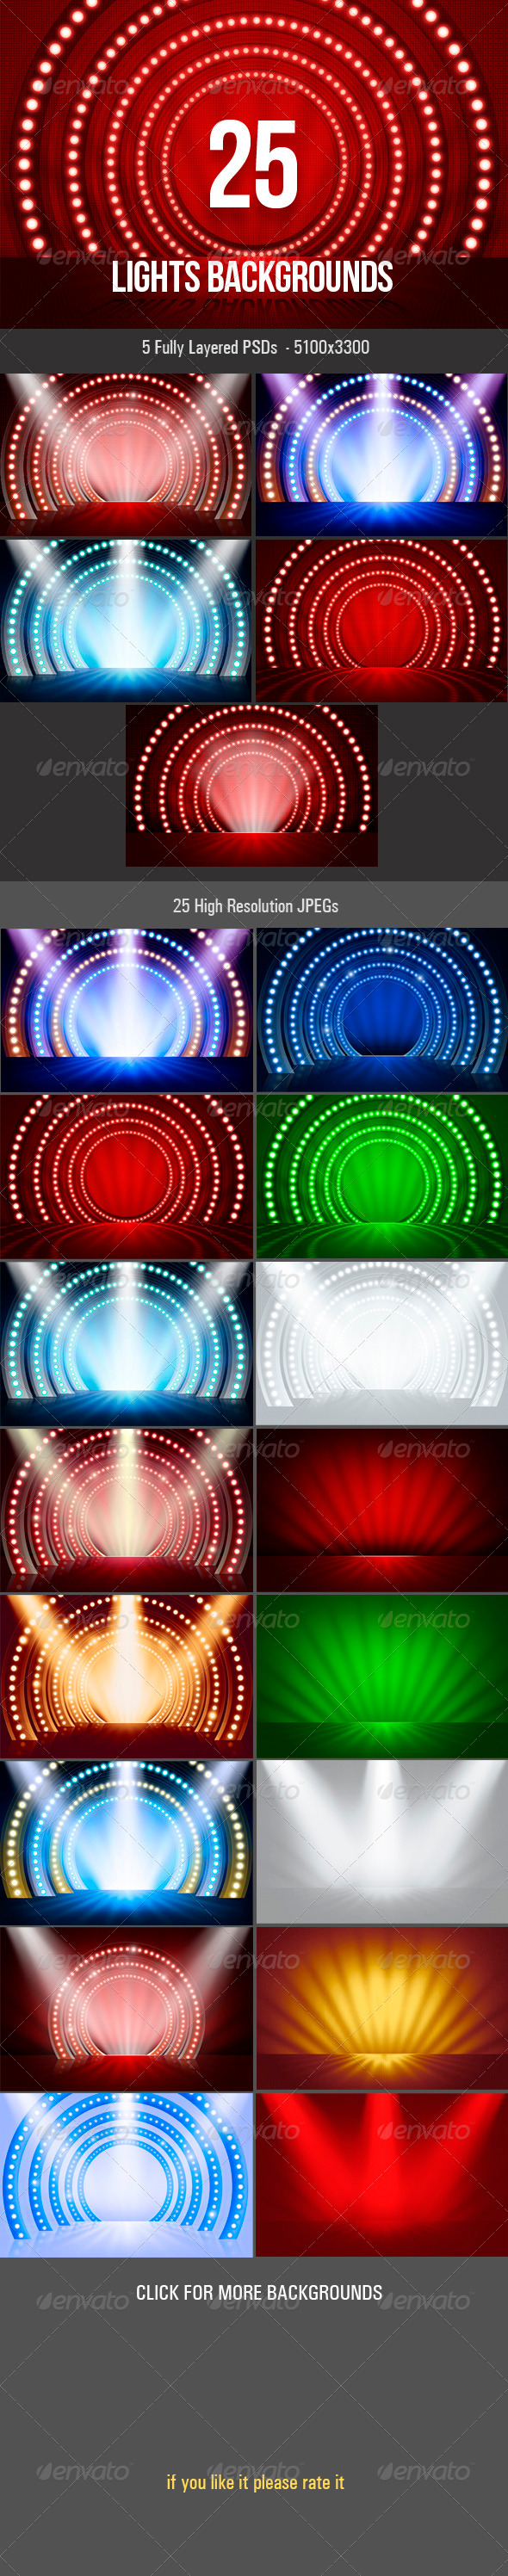 Lights Backgrounds - 3D Backgrounds